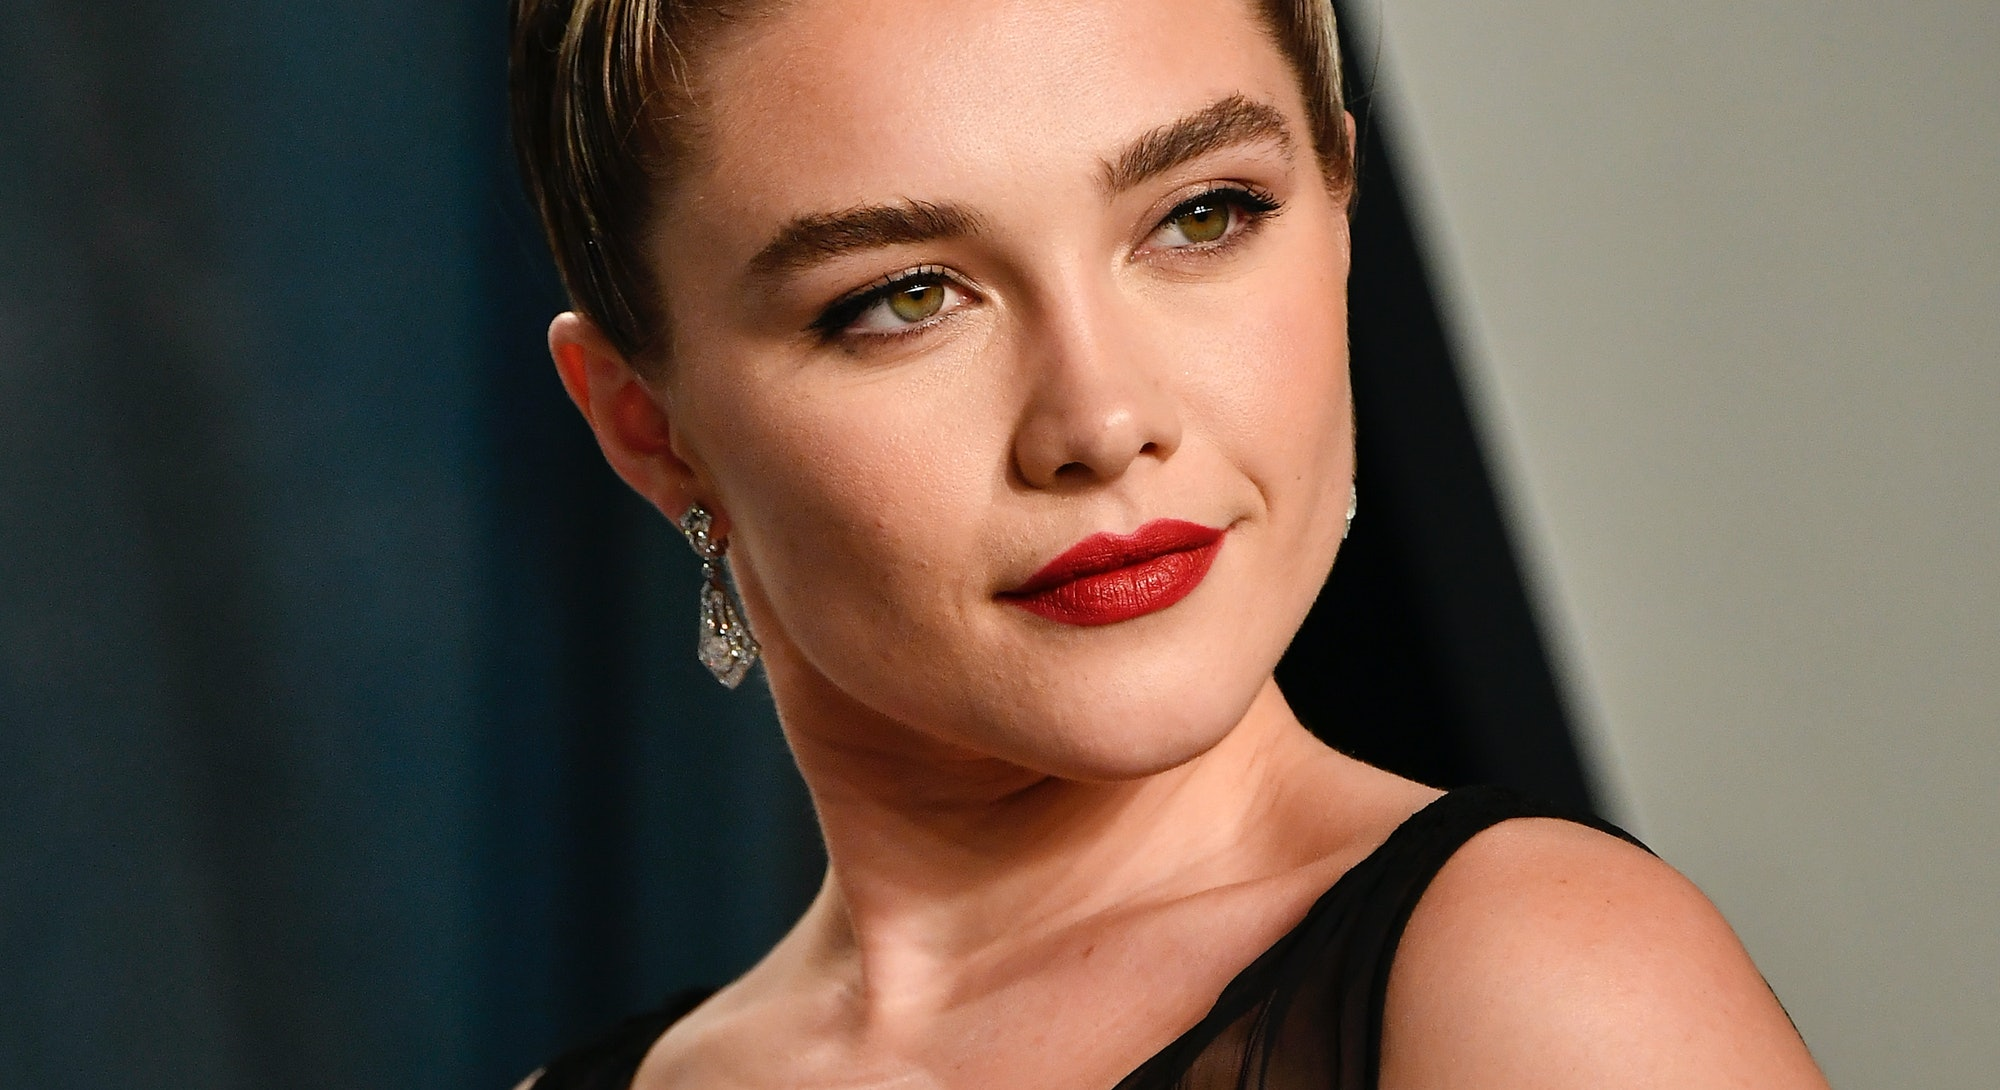 BEVERLY HILLS, CALIFORNIA - FEBRUARY 09: Florence Pugh attends the 2020 Vanity Fair Oscar Party host...